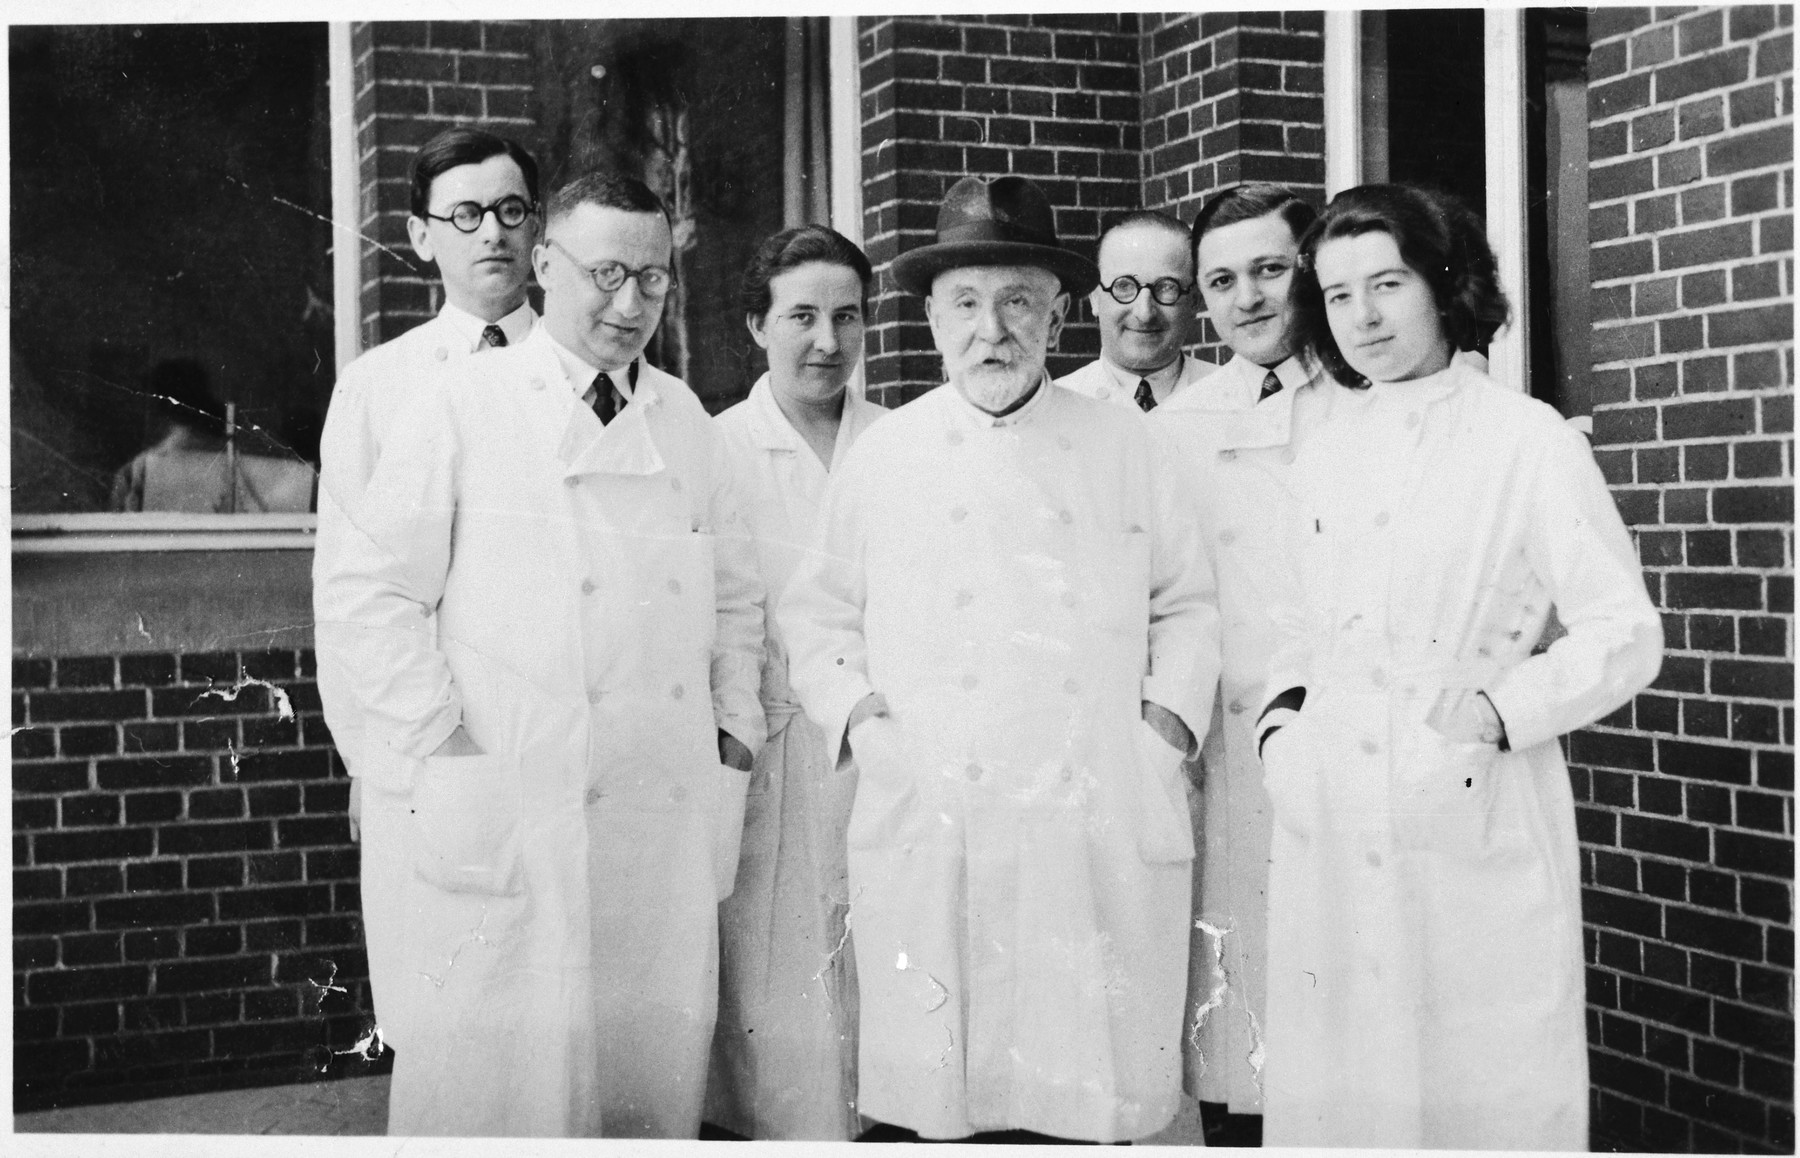 Group portrait of the staff of the Jewish hospital in Berlin.  Dr. Heinz Rubenstein is pictured on the far left in the back row.